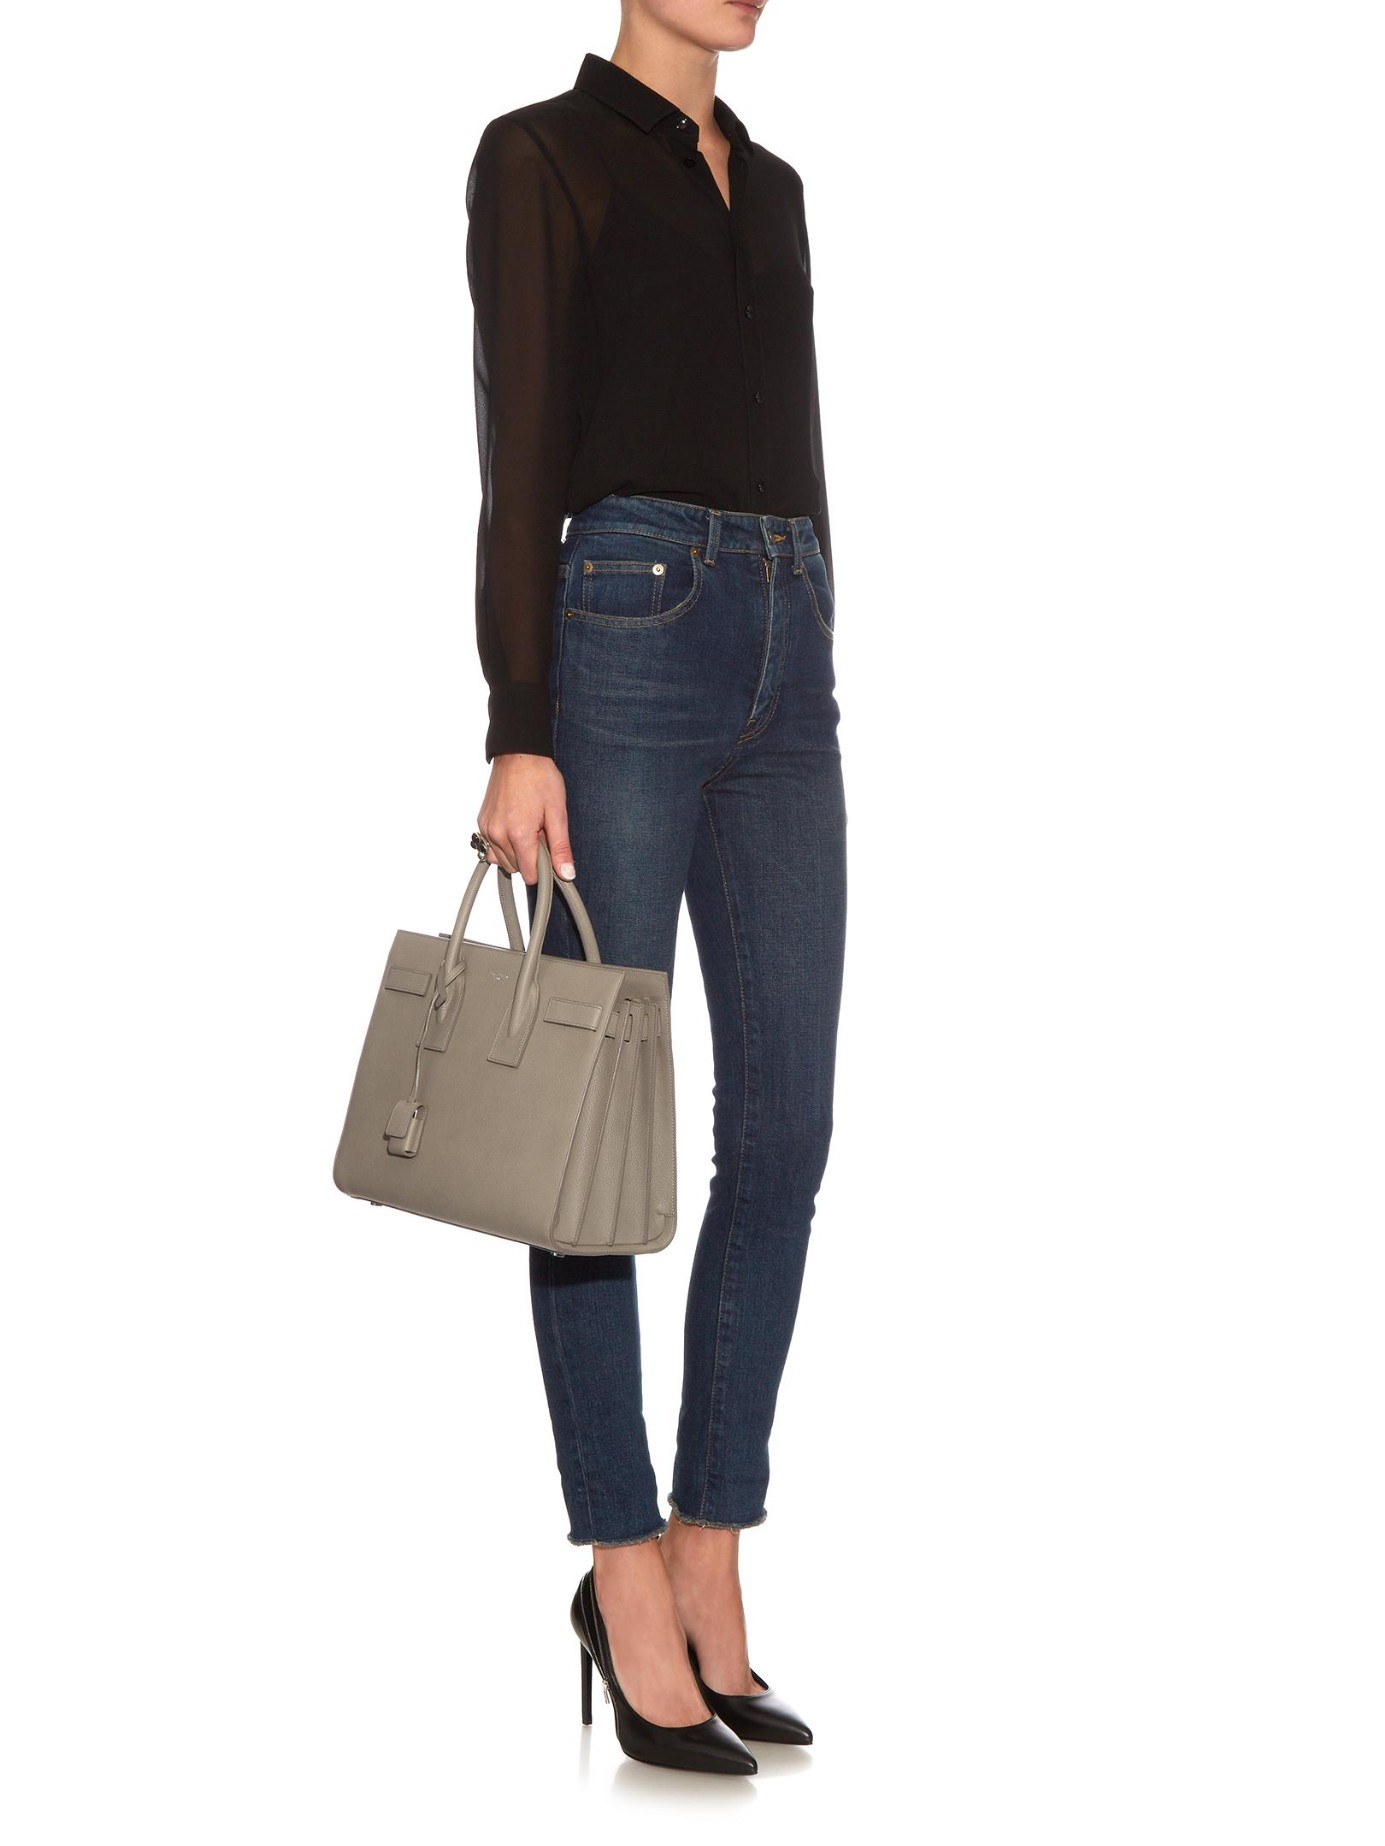 a31b3a04b7f5 Saint Laurent Sac De Jour Small Grained-leather Tote in Gray - Lyst